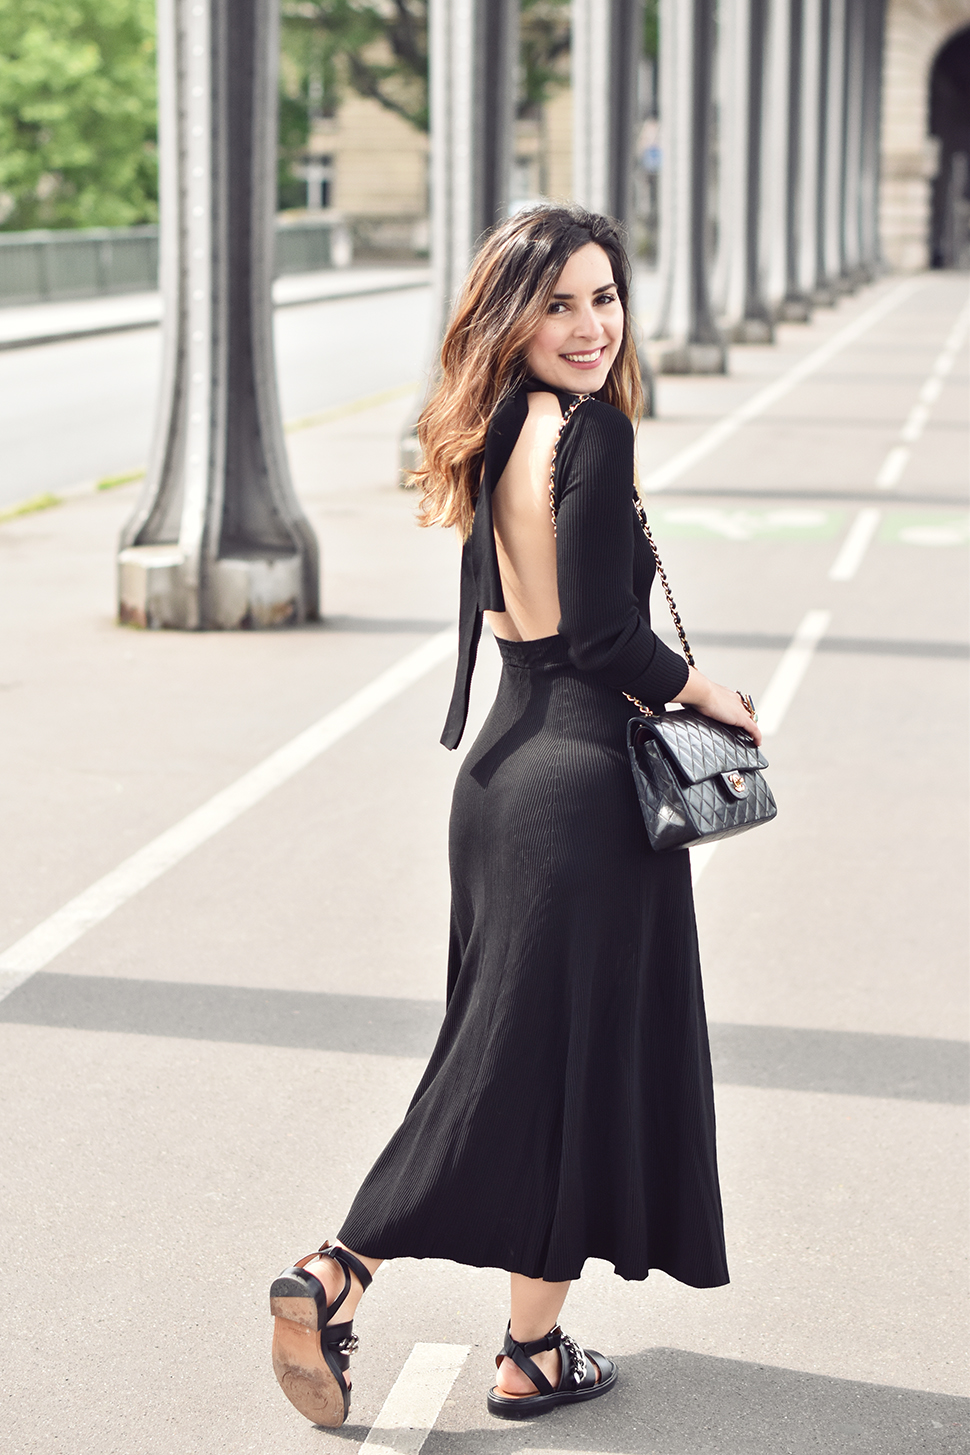 Helloitsvalentine_blackdress_BirHakeim_Givenchy_sandals_5